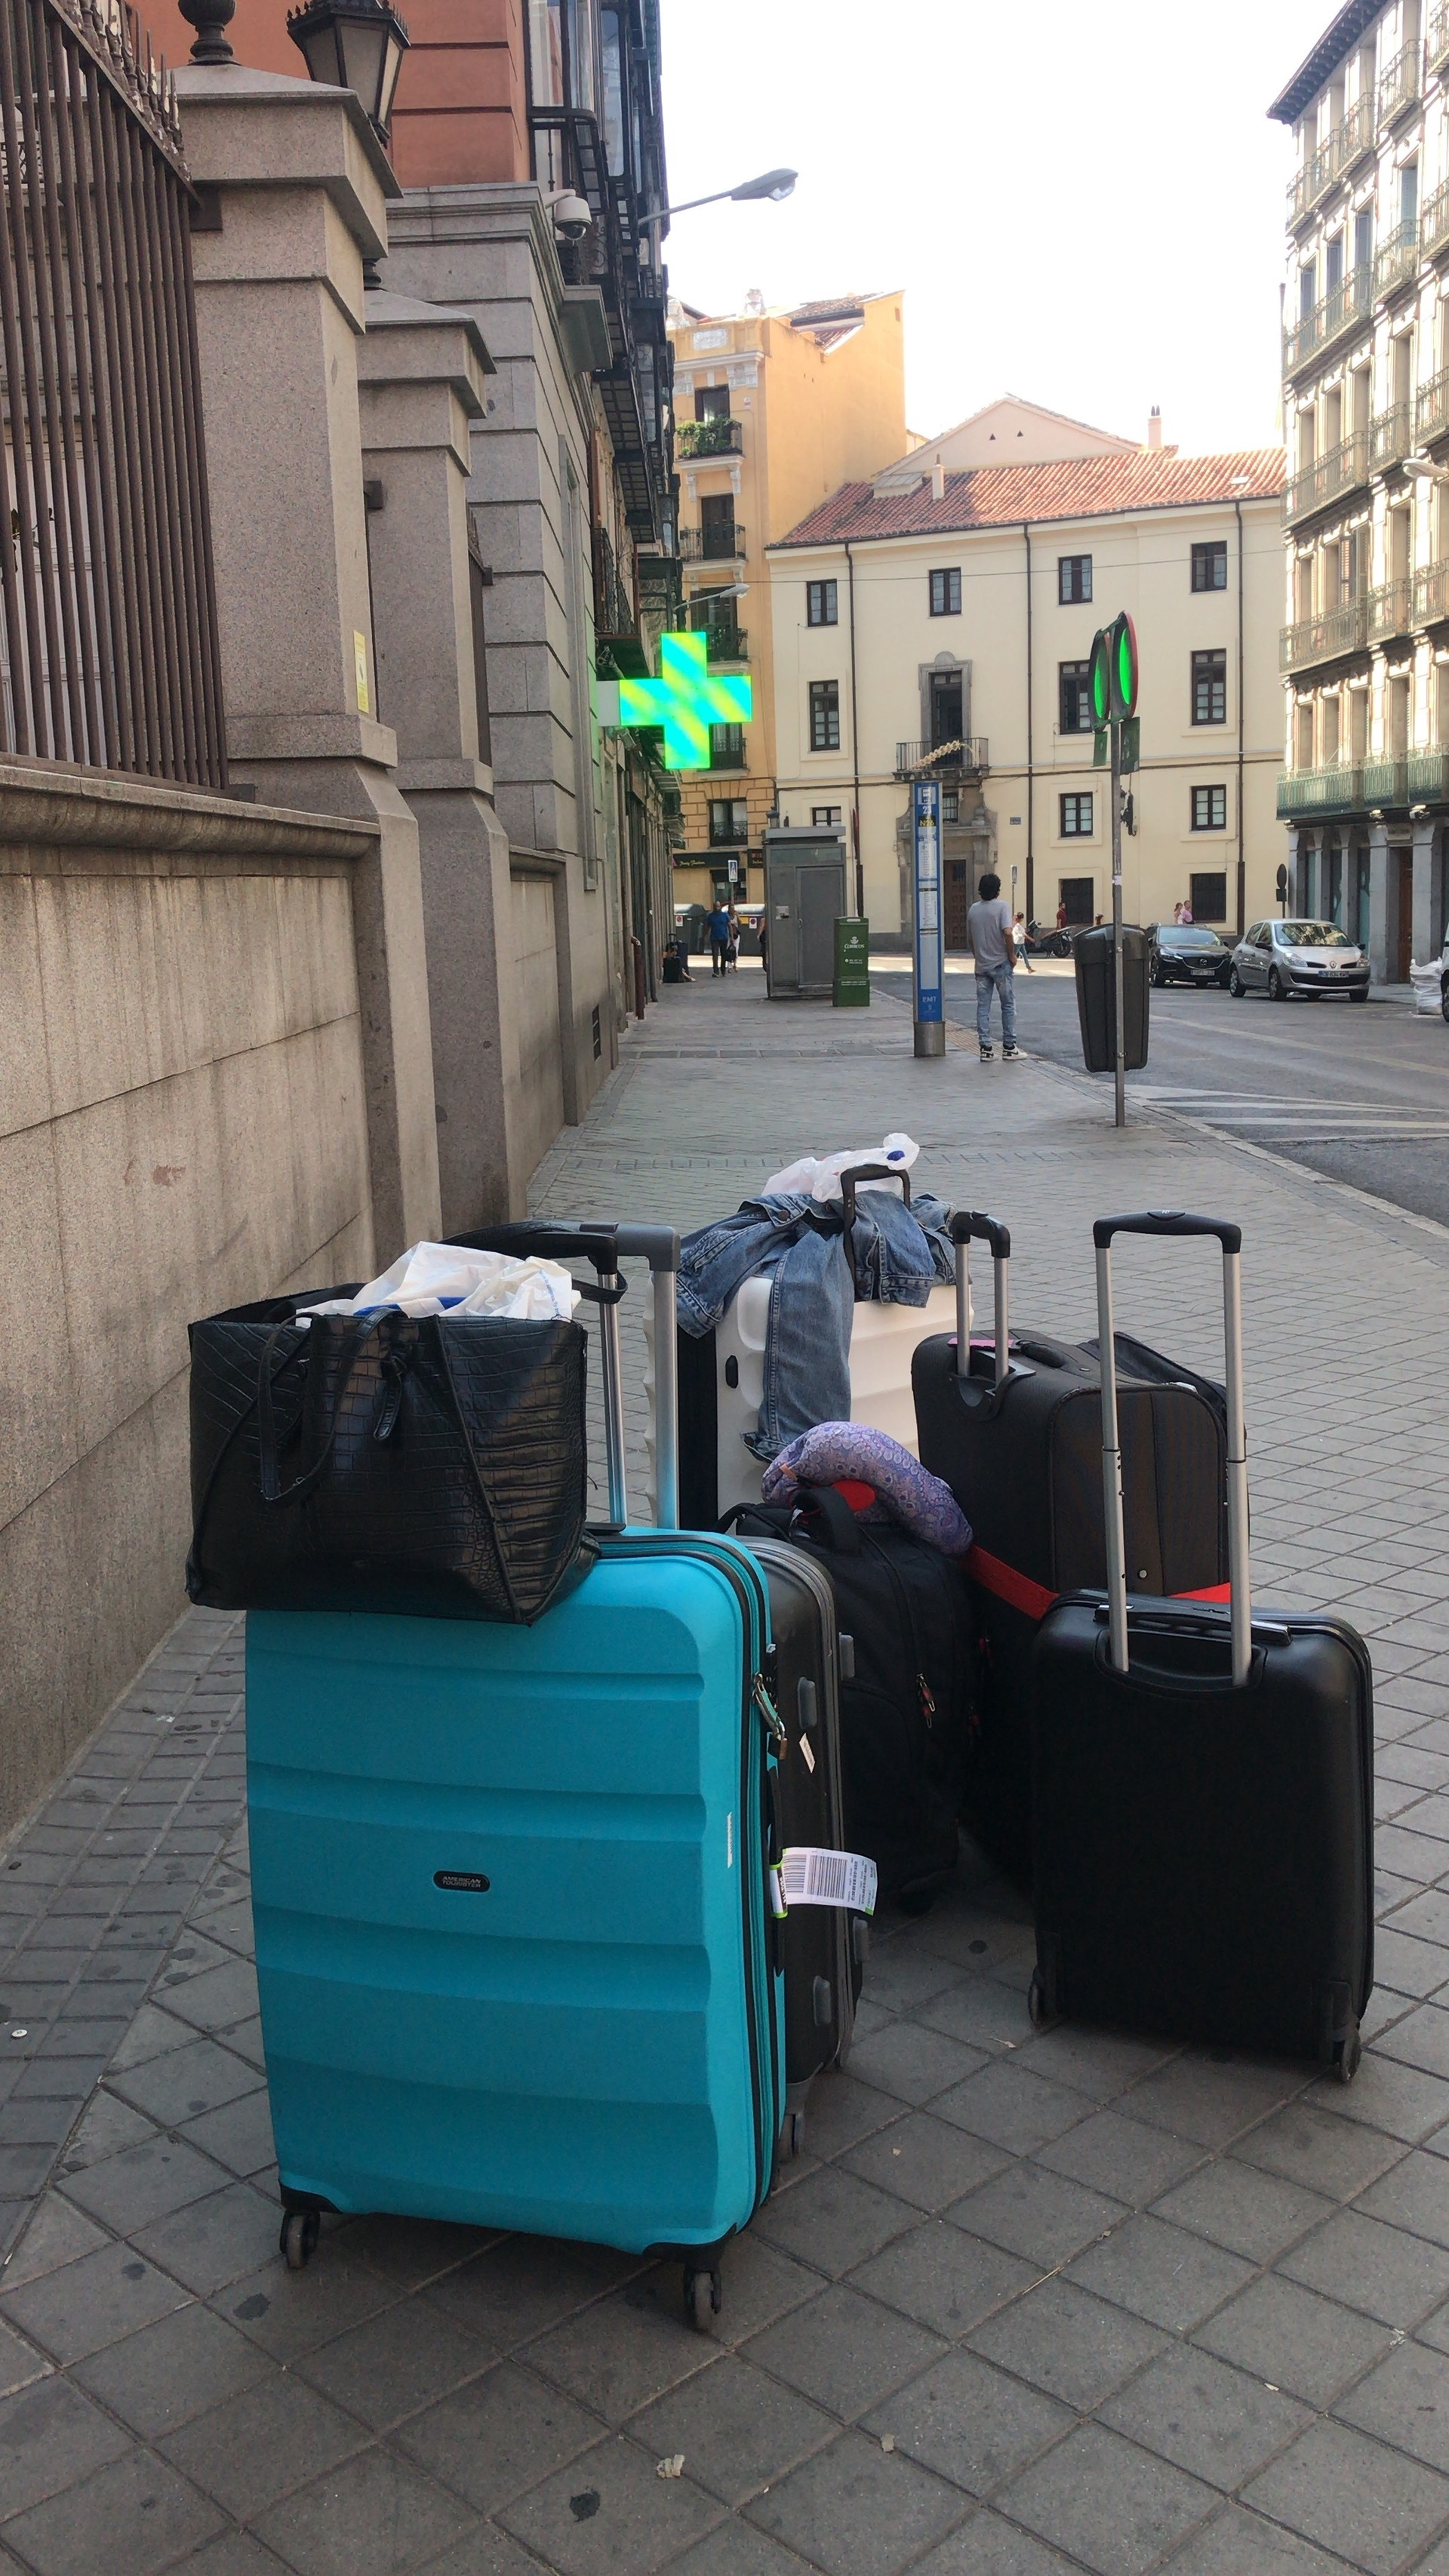 One Year Has Passed Since My Erasmus - Words of Advice